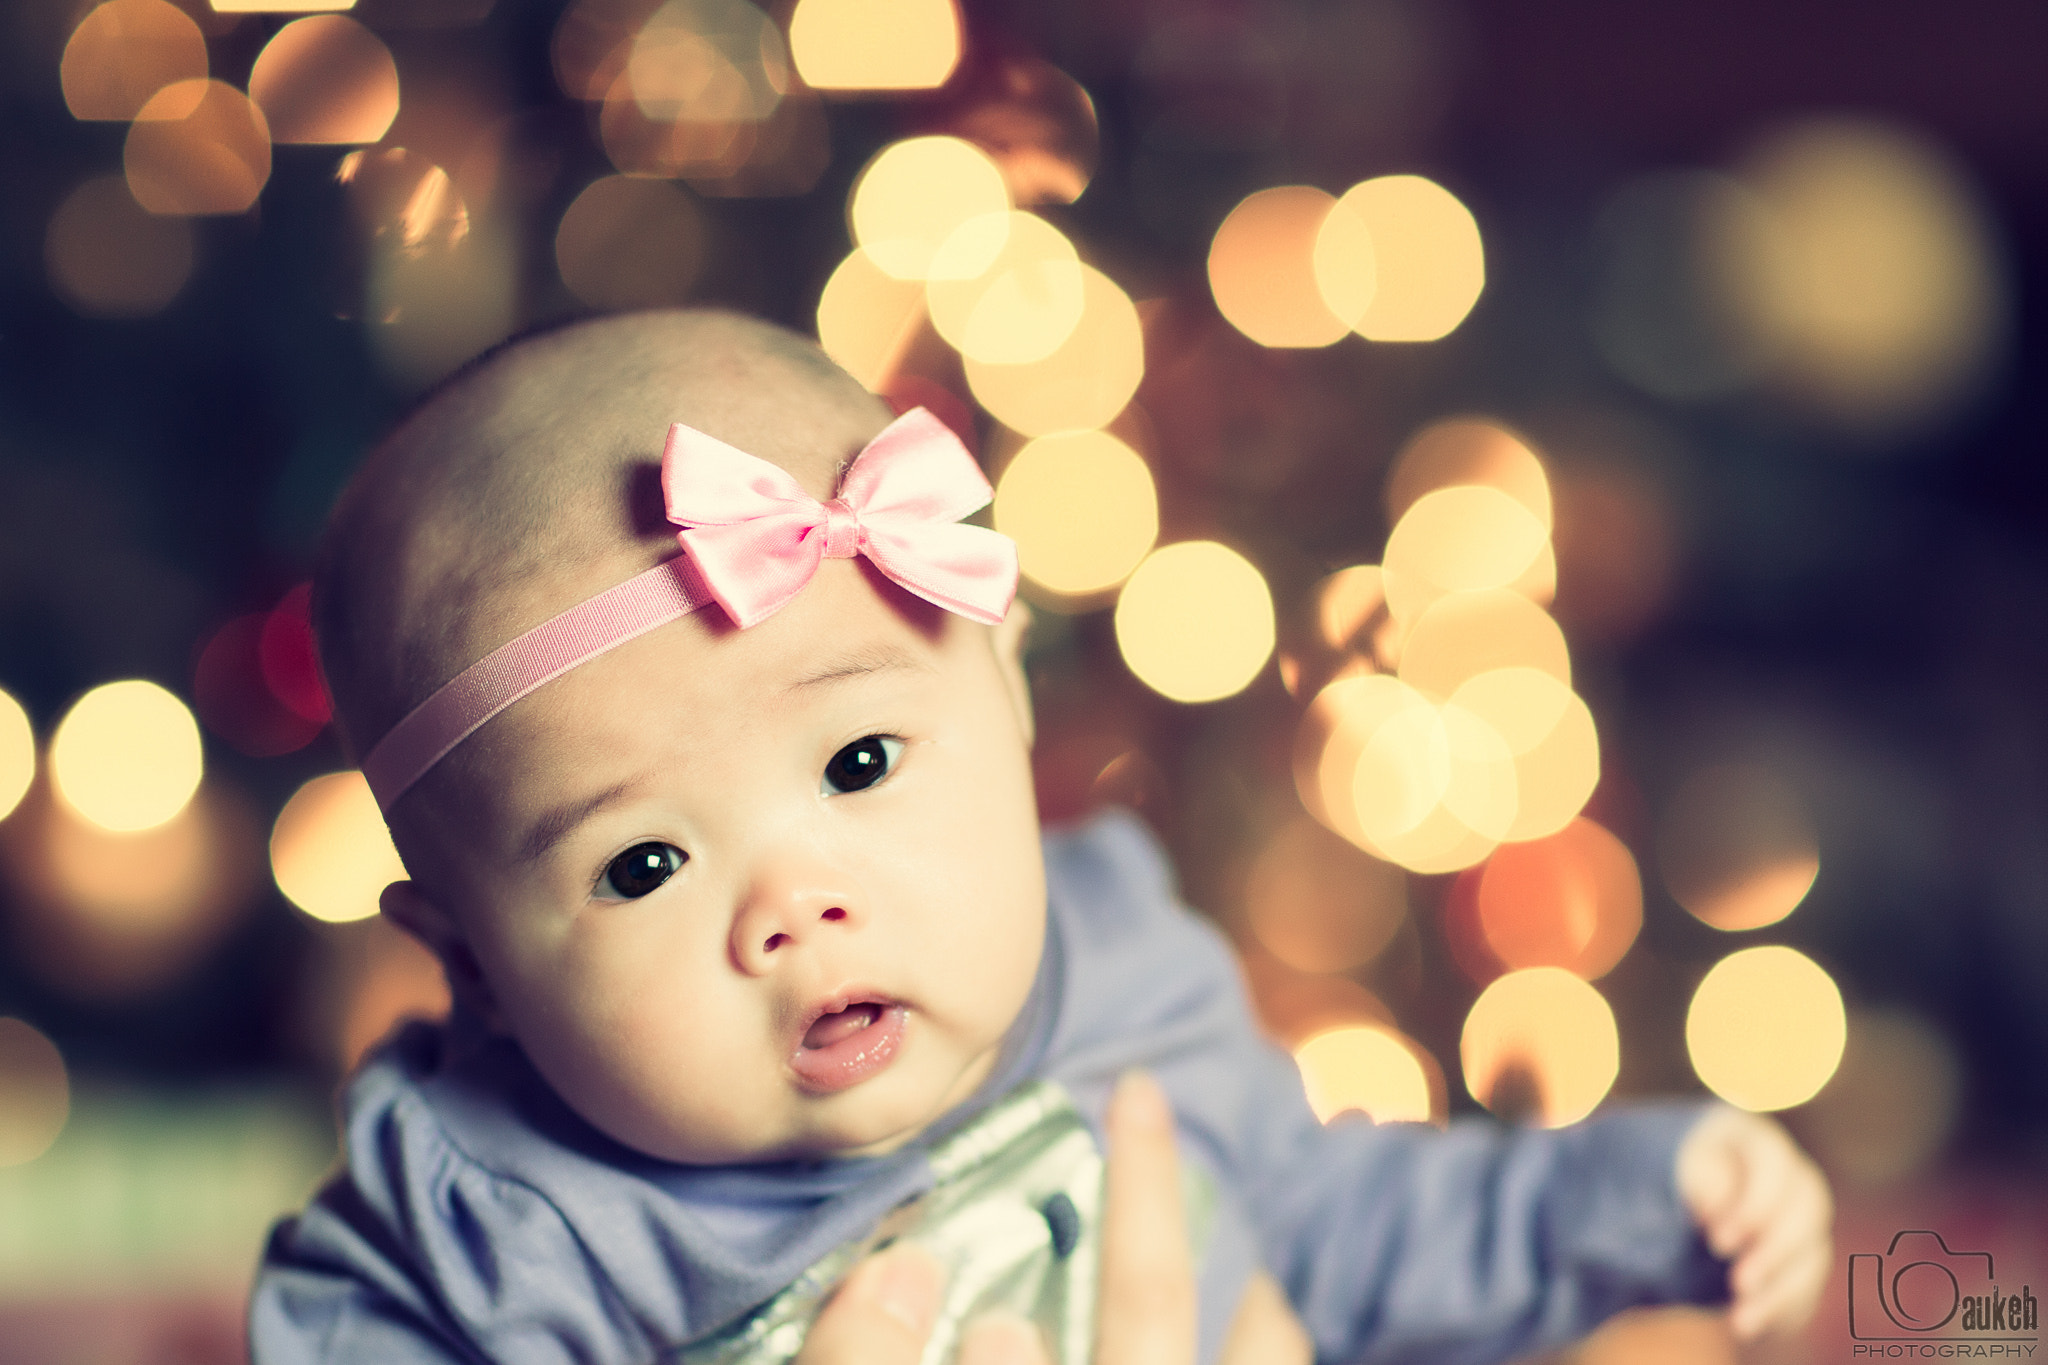 Photograph My baby girl Kalina is 3 months old today by Baukeh Photography on 500px